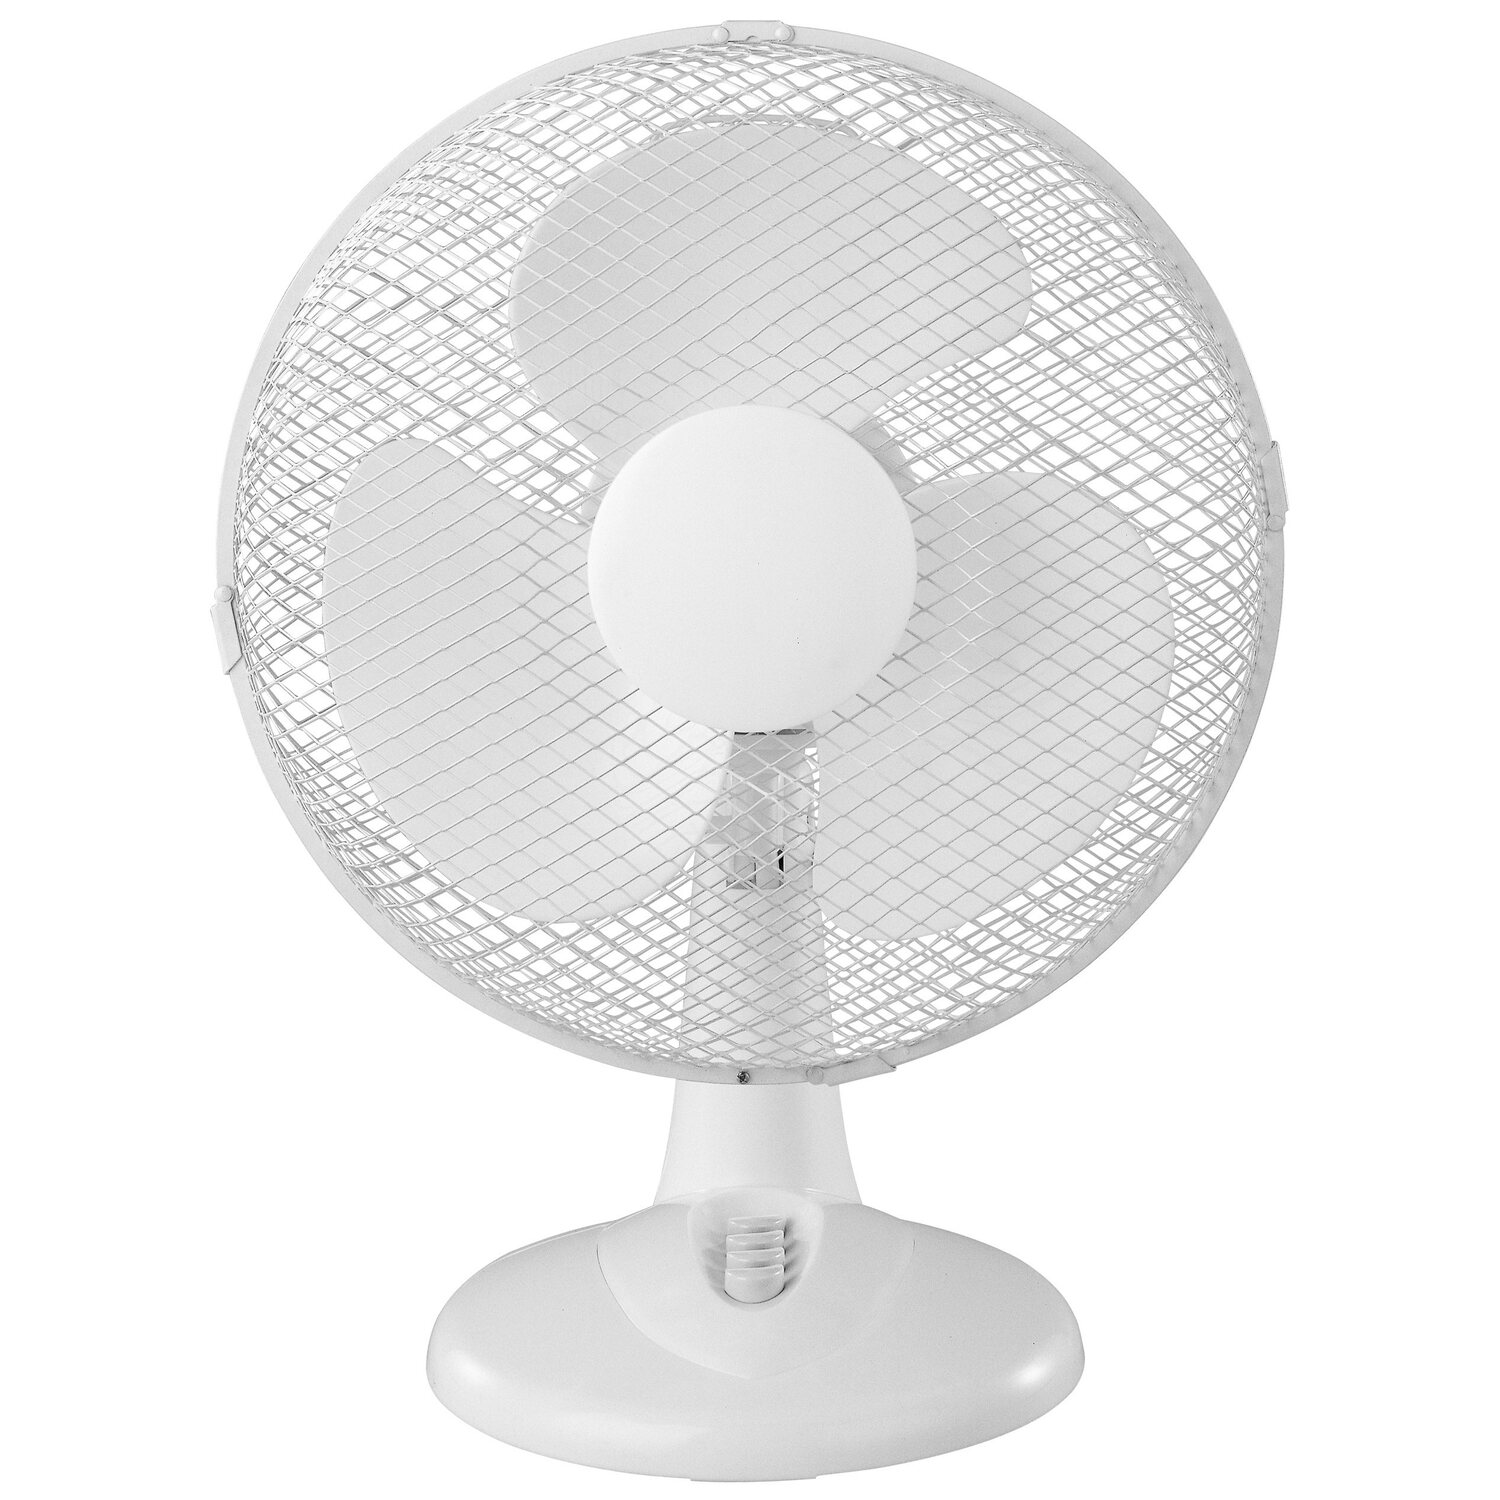 Ventilatore da tavolo cmi 30 cm acquista da obi for Obi ventilatori